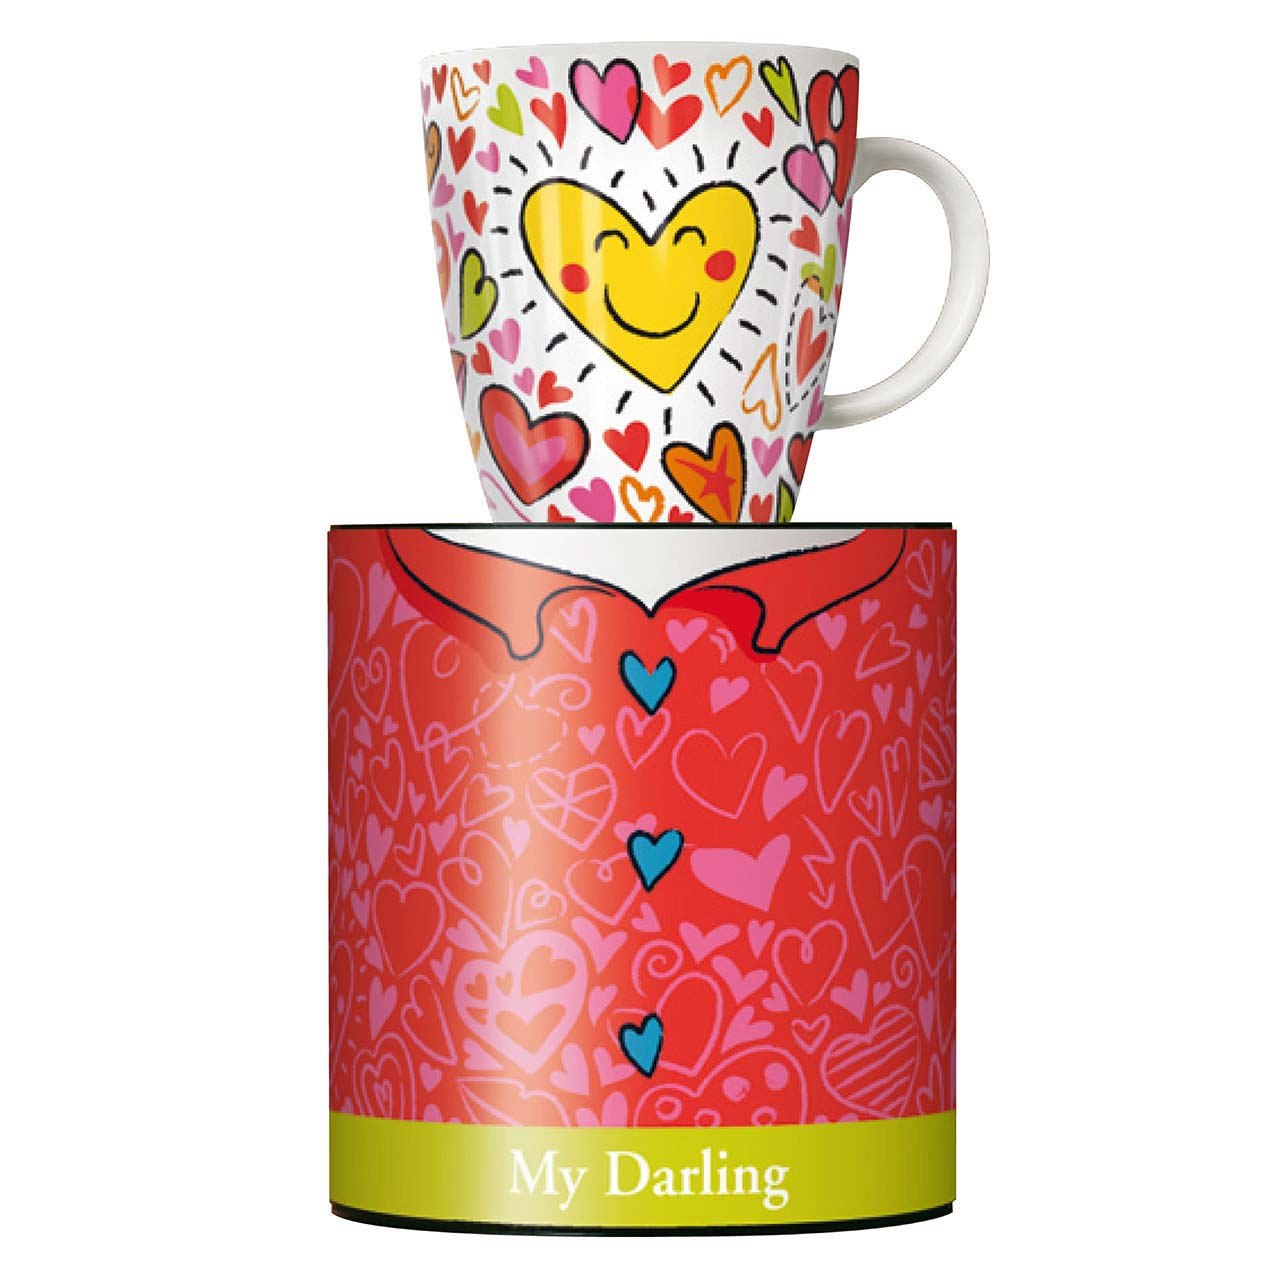 Ritzenhoff MY DARLING mug design Stephanie Roehe | the design gift shop